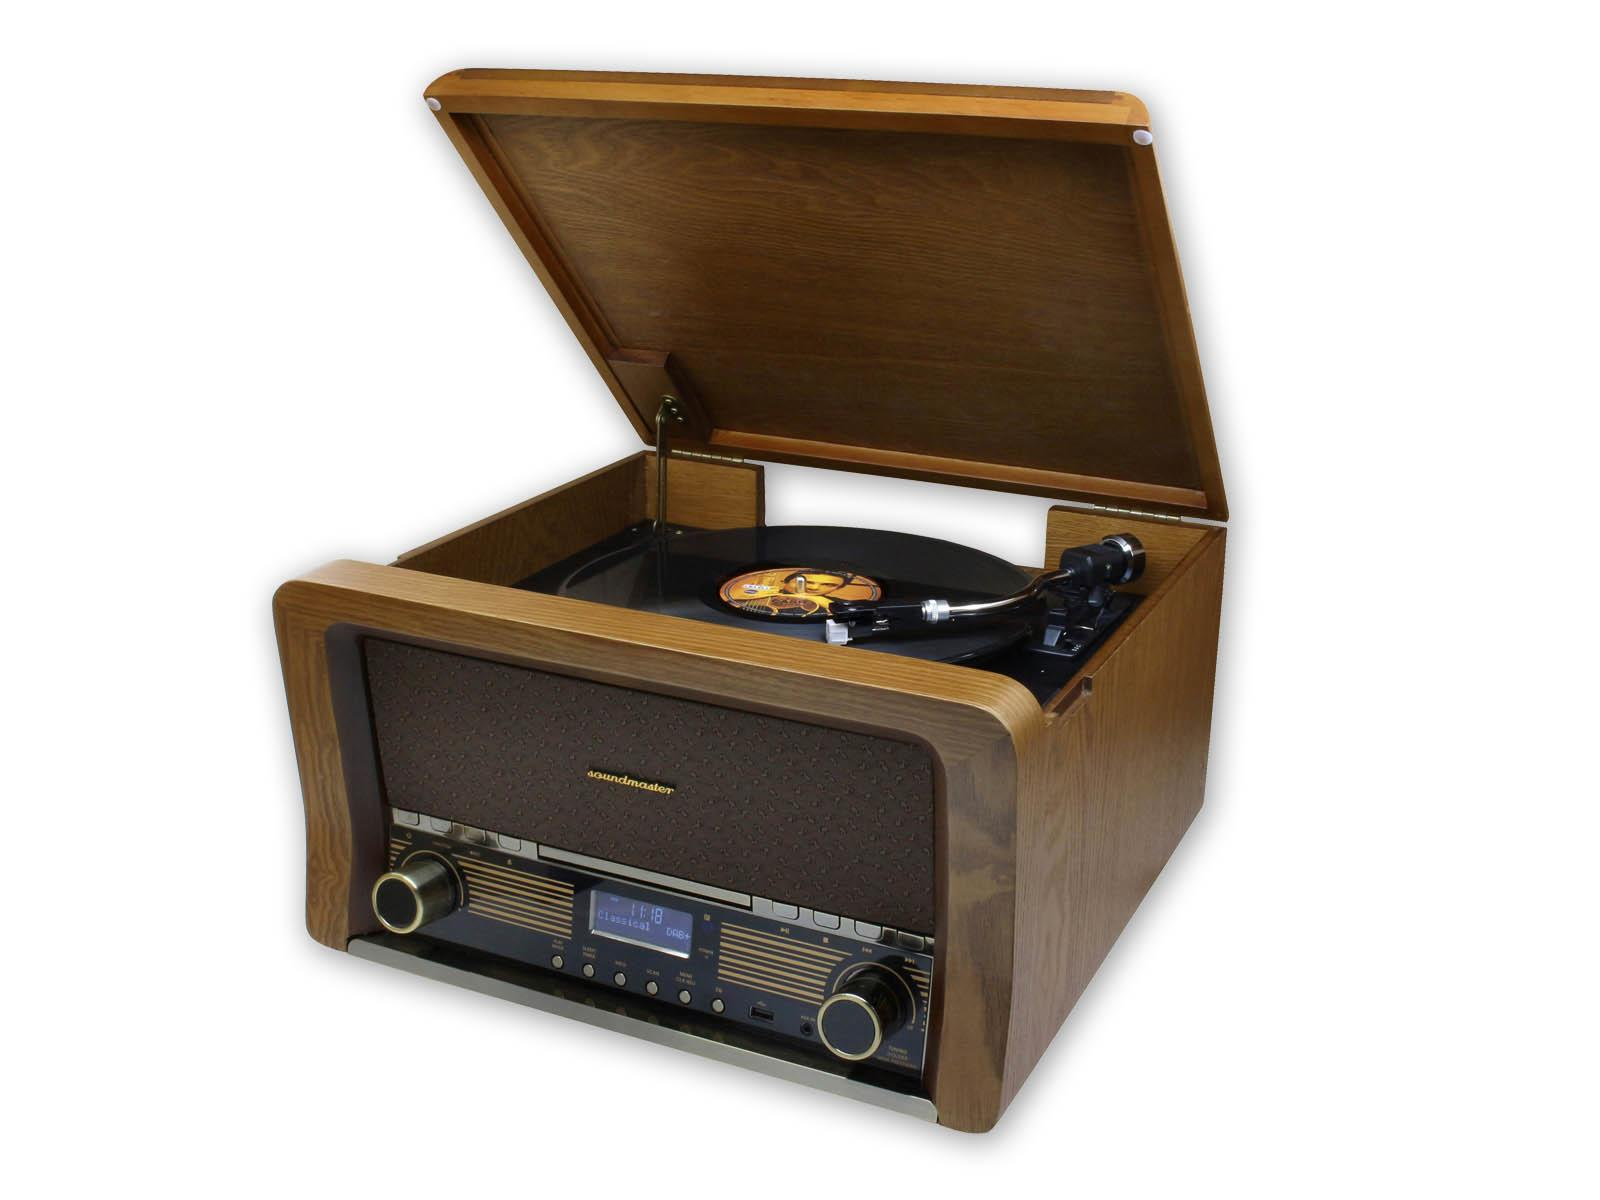 soundmaster NR50 Retro Record Player HiFi with Bluetooth, CD & FM / DAB Radio